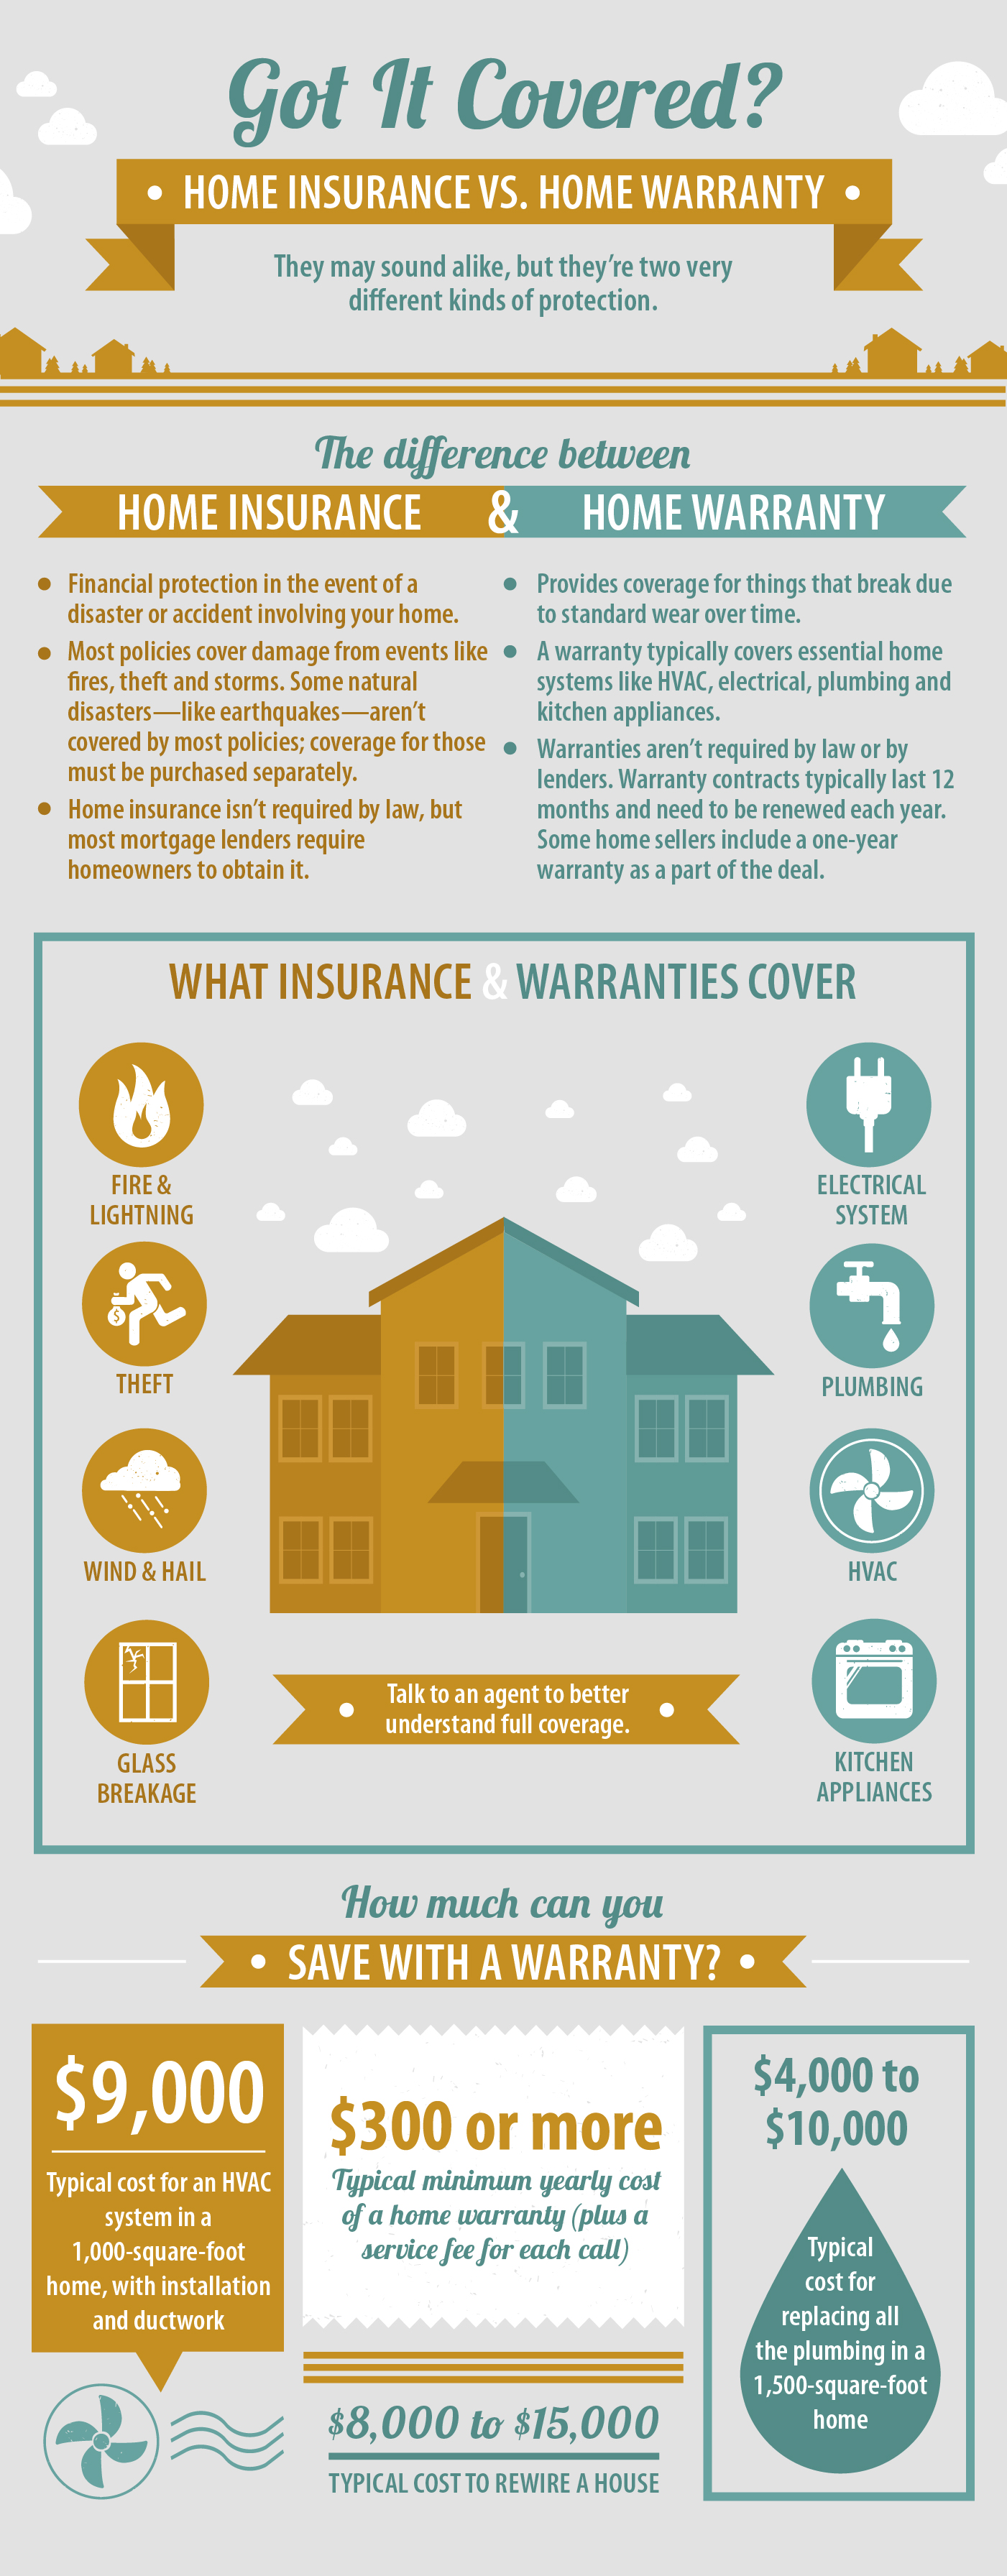 Home Insurance Vs Home Warranty Coverage